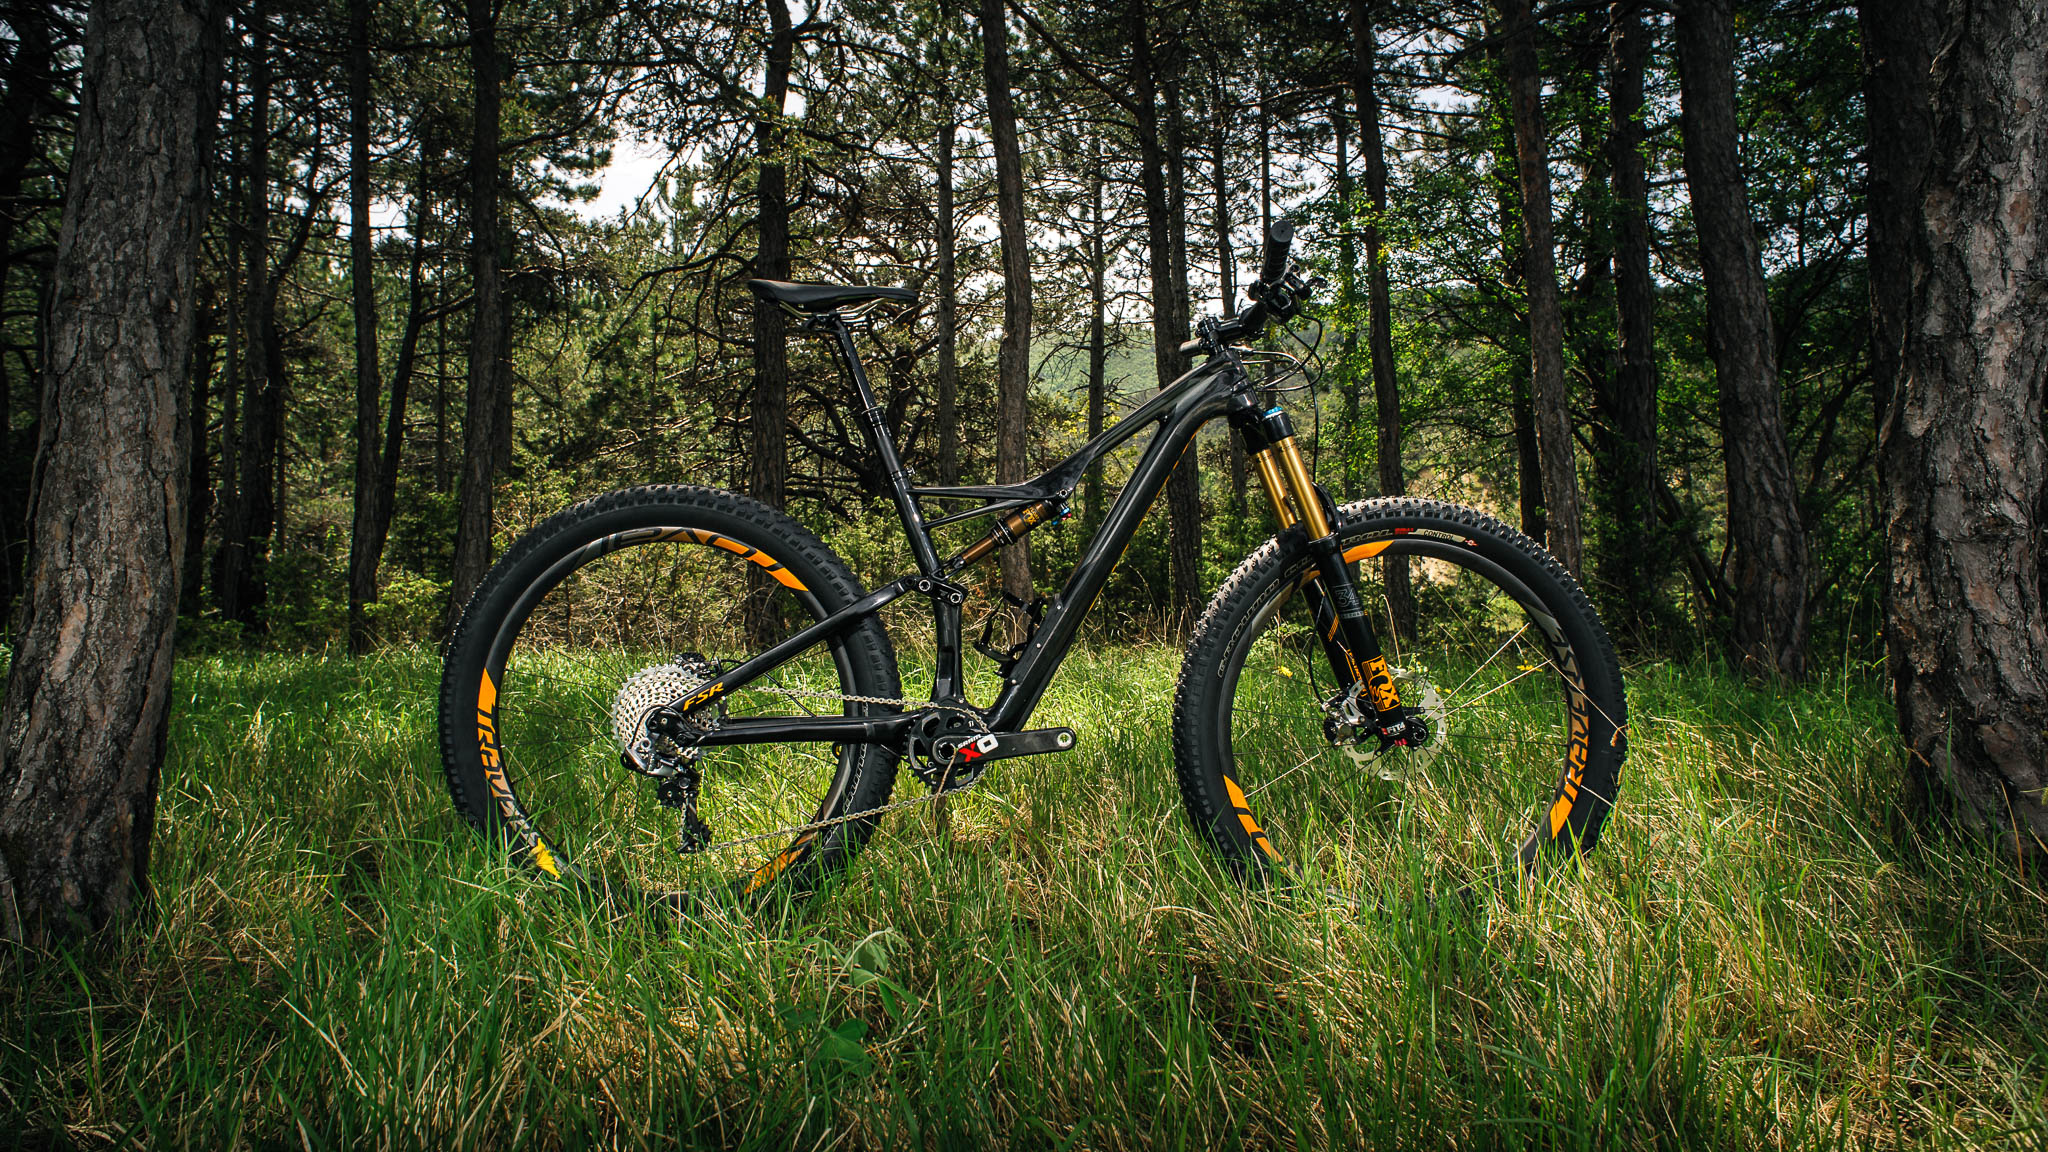 Presentation_Specialized_Stumpjumper_2016_6Fattie_Copyright_OBeart_VojoMag-1